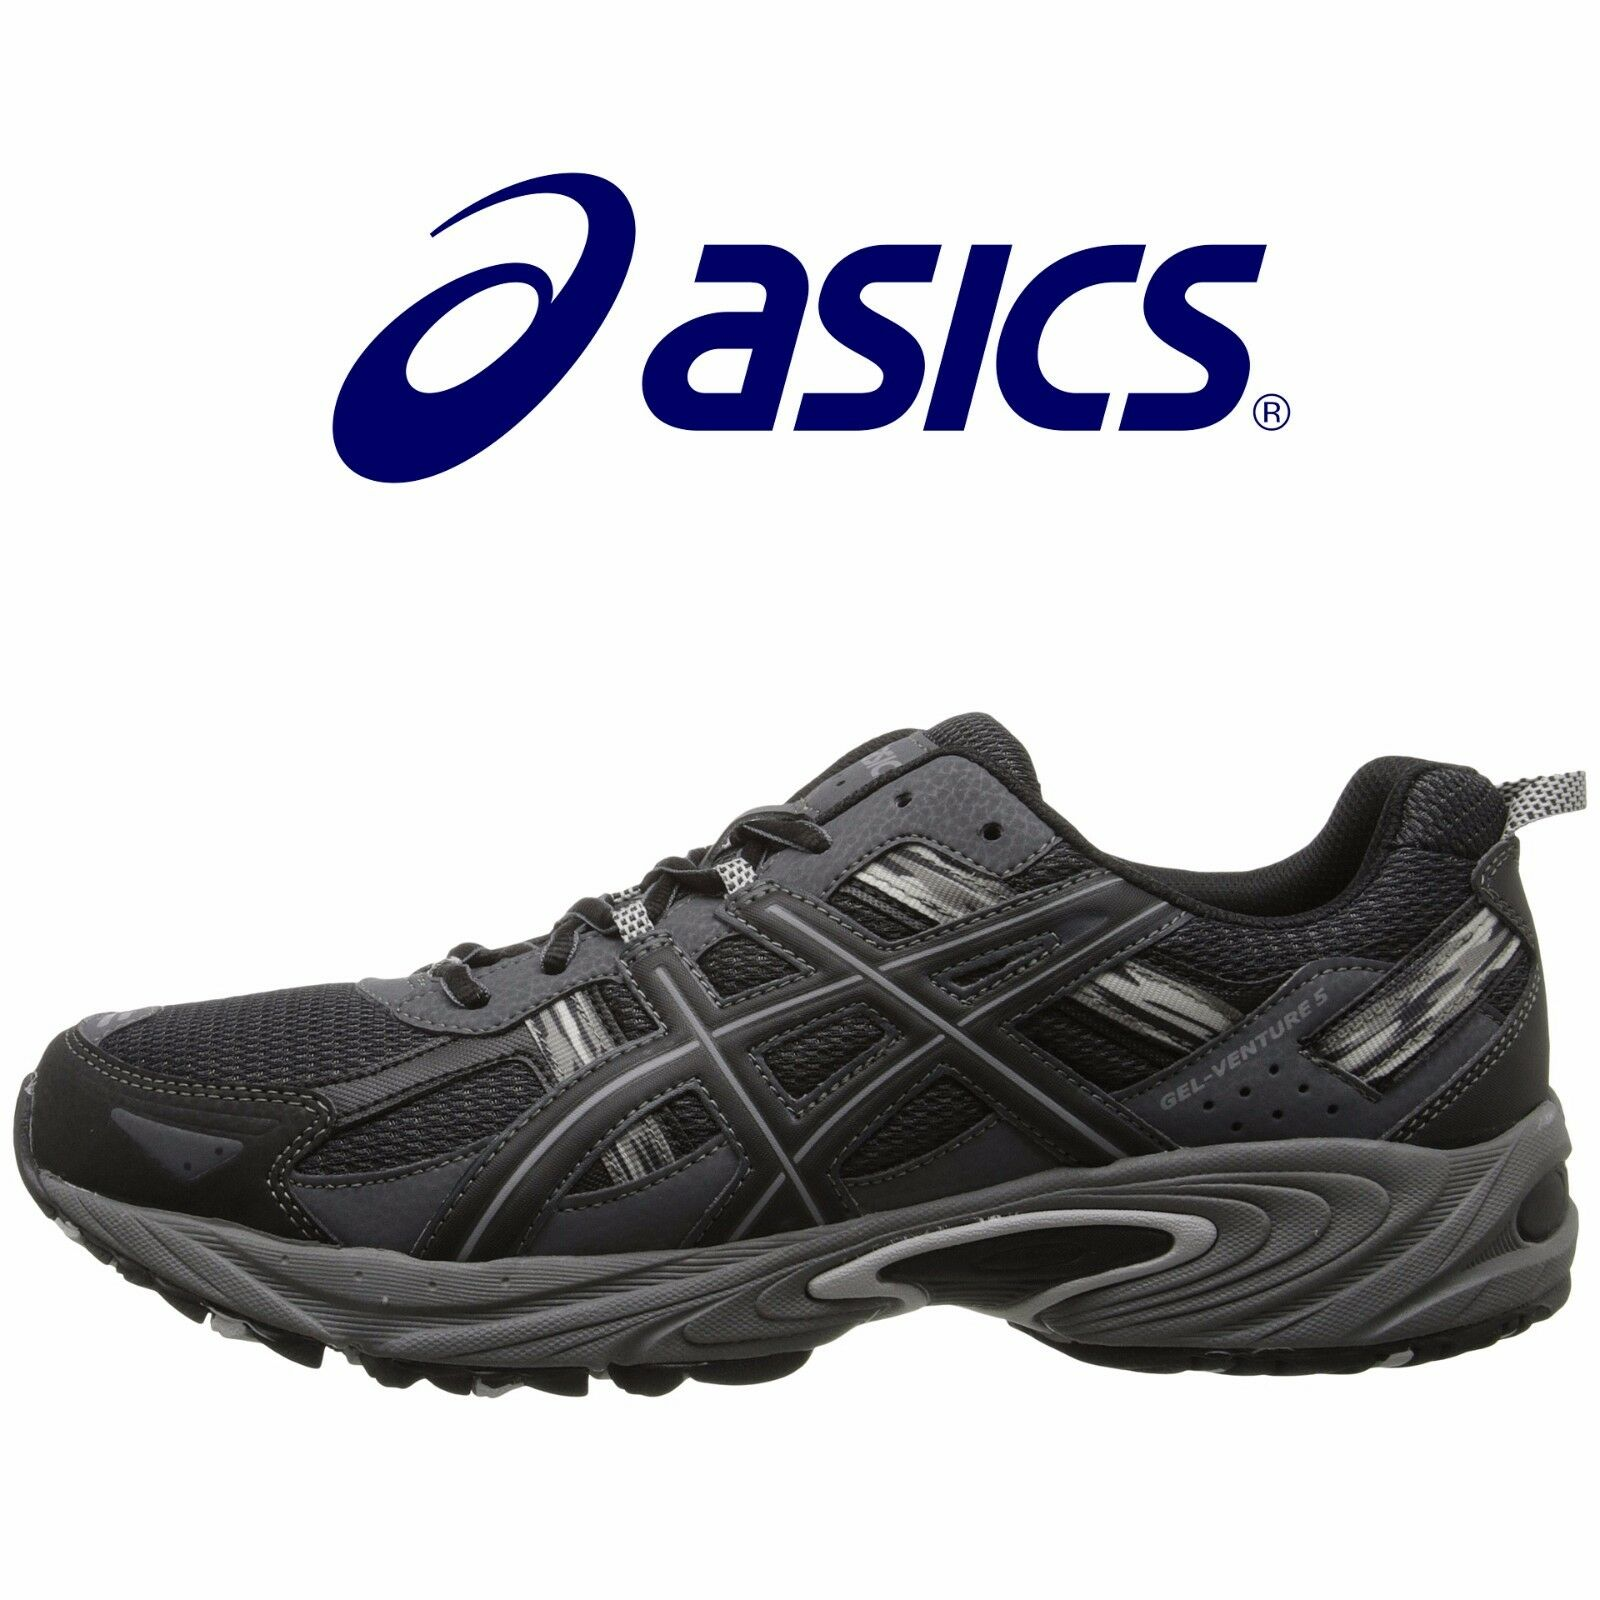 item 2 Mens ASICS GEL Venture 5 Running Shoes Black Onyx Charcoal All Sizes  NIB -Mens ASICS GEL Venture 5 Running Shoes Black Onyx Charcoal All Sizes  NIB